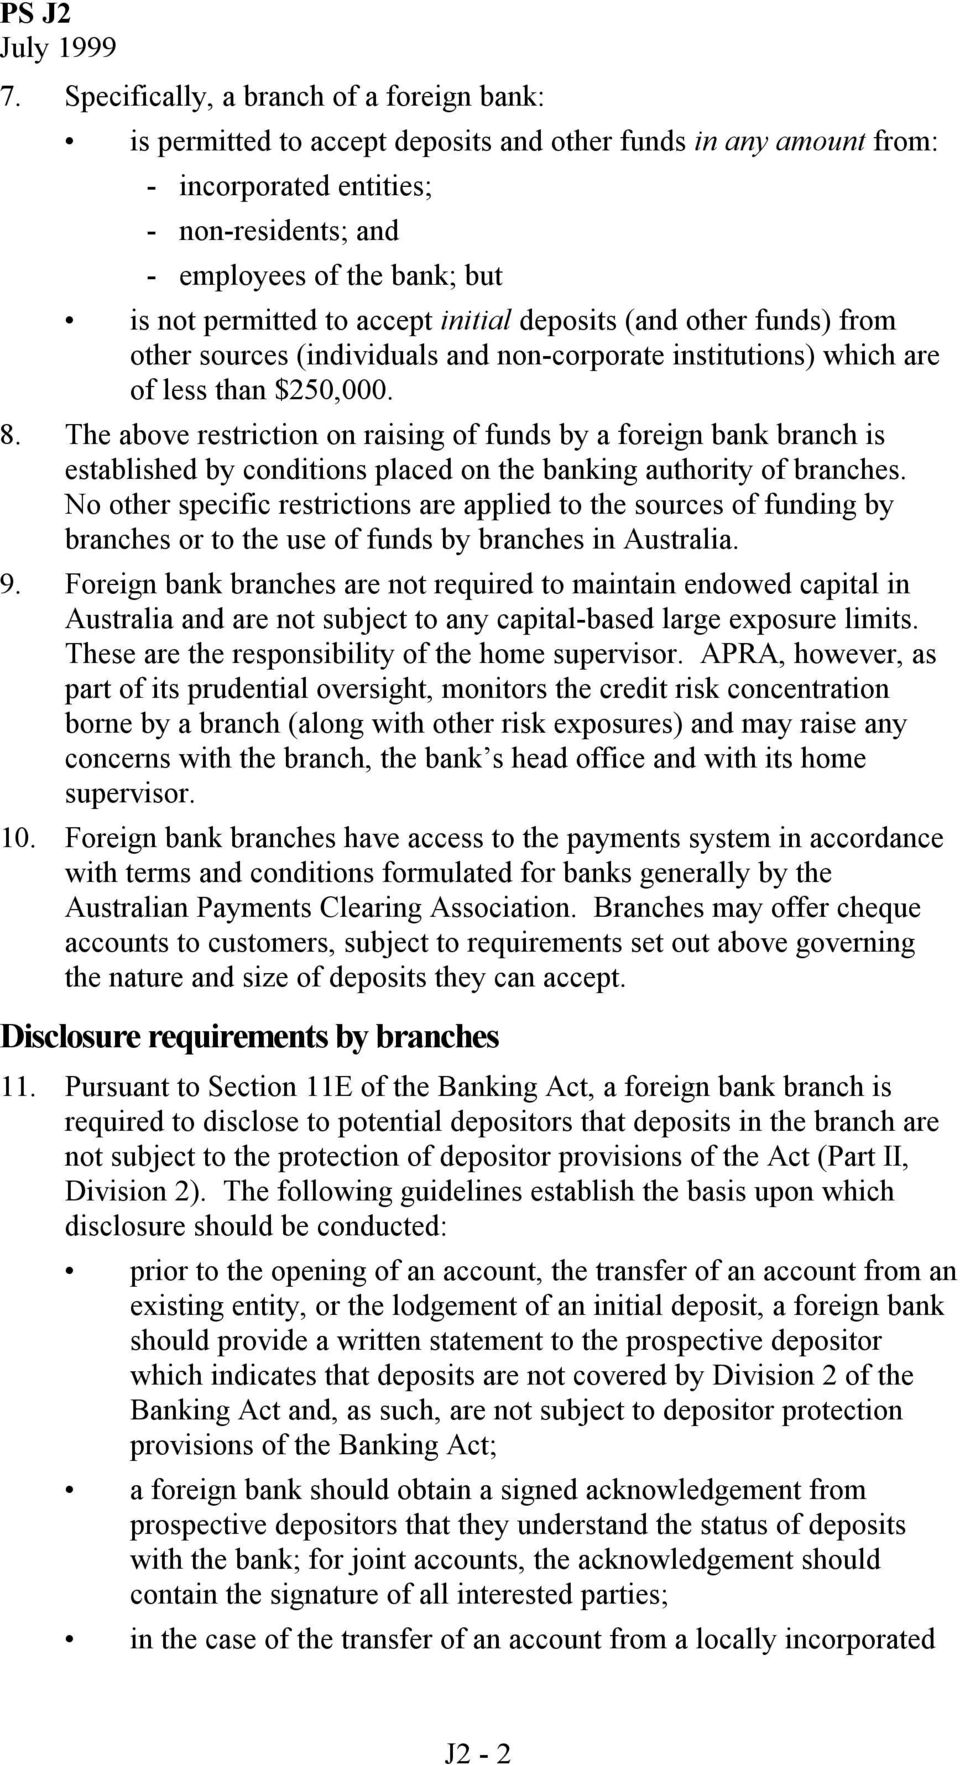 The above restriction on raising of funds by a foreign bank branch is established by conditions placed on the banking authority of branches.